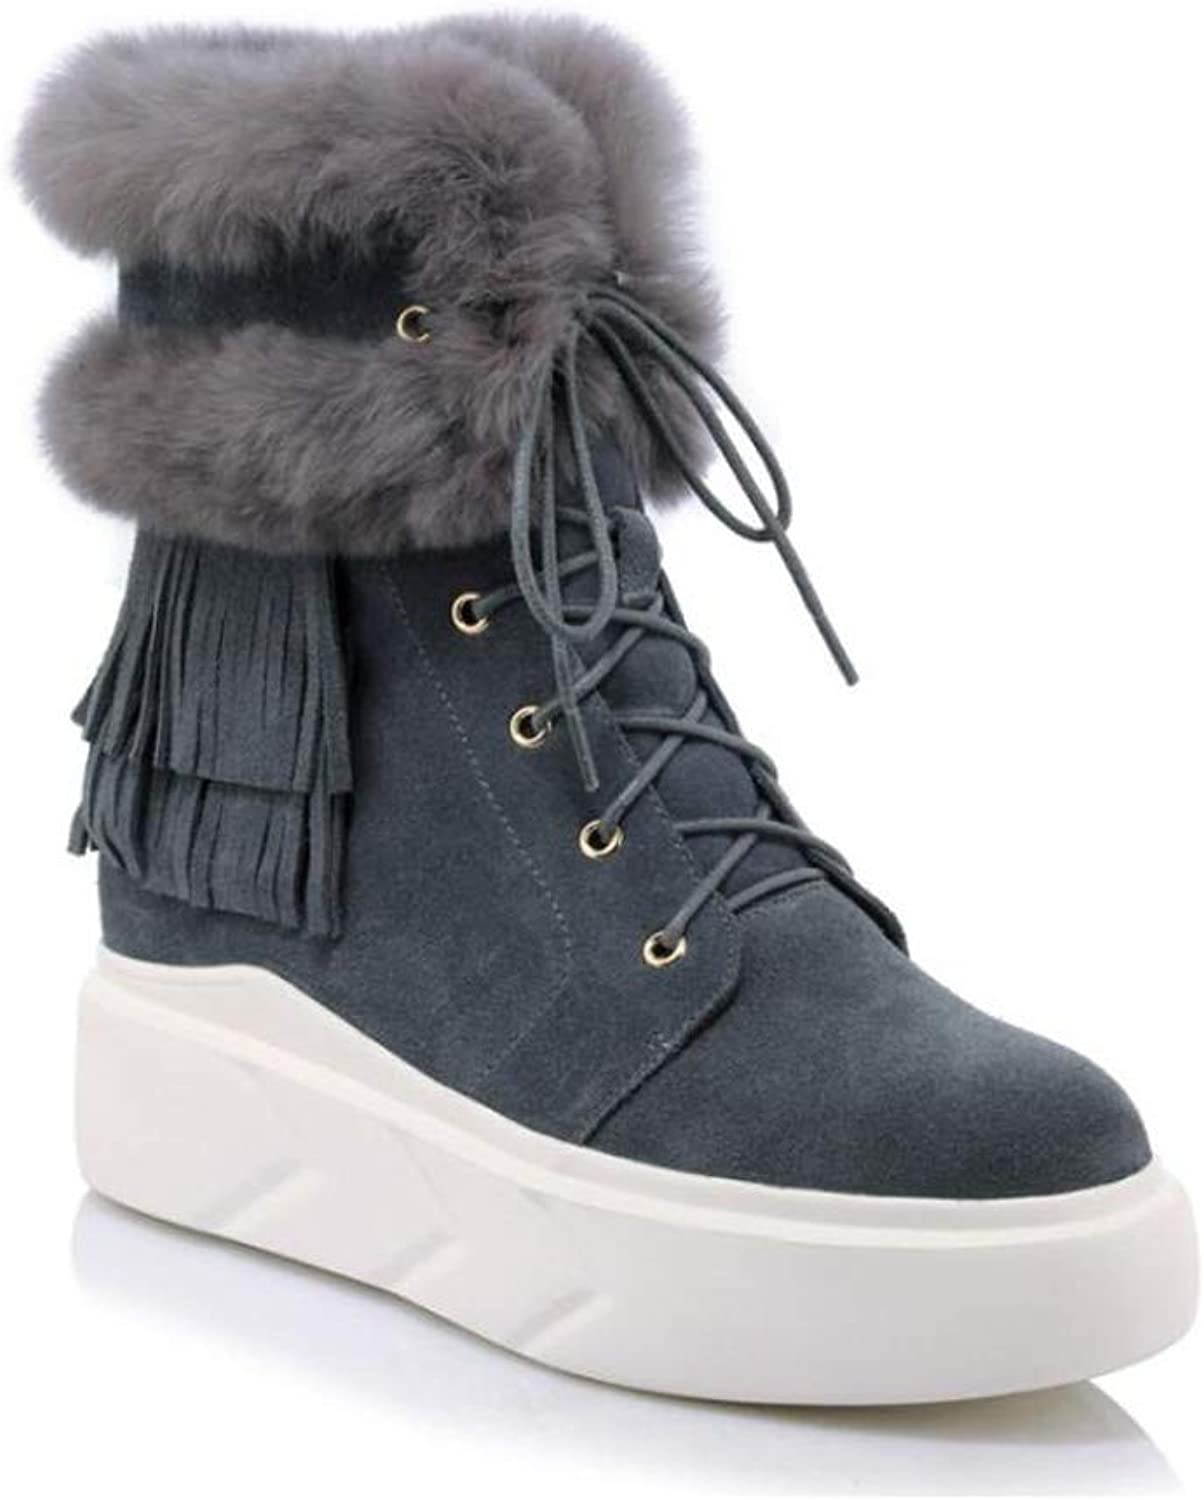 Women's Cotton Boots Rabbit Fur Snow Boots Women's Short Boots Korean Version Plus Velvet Cotton shoes Sponge Cake Flat Leather Women's Boots